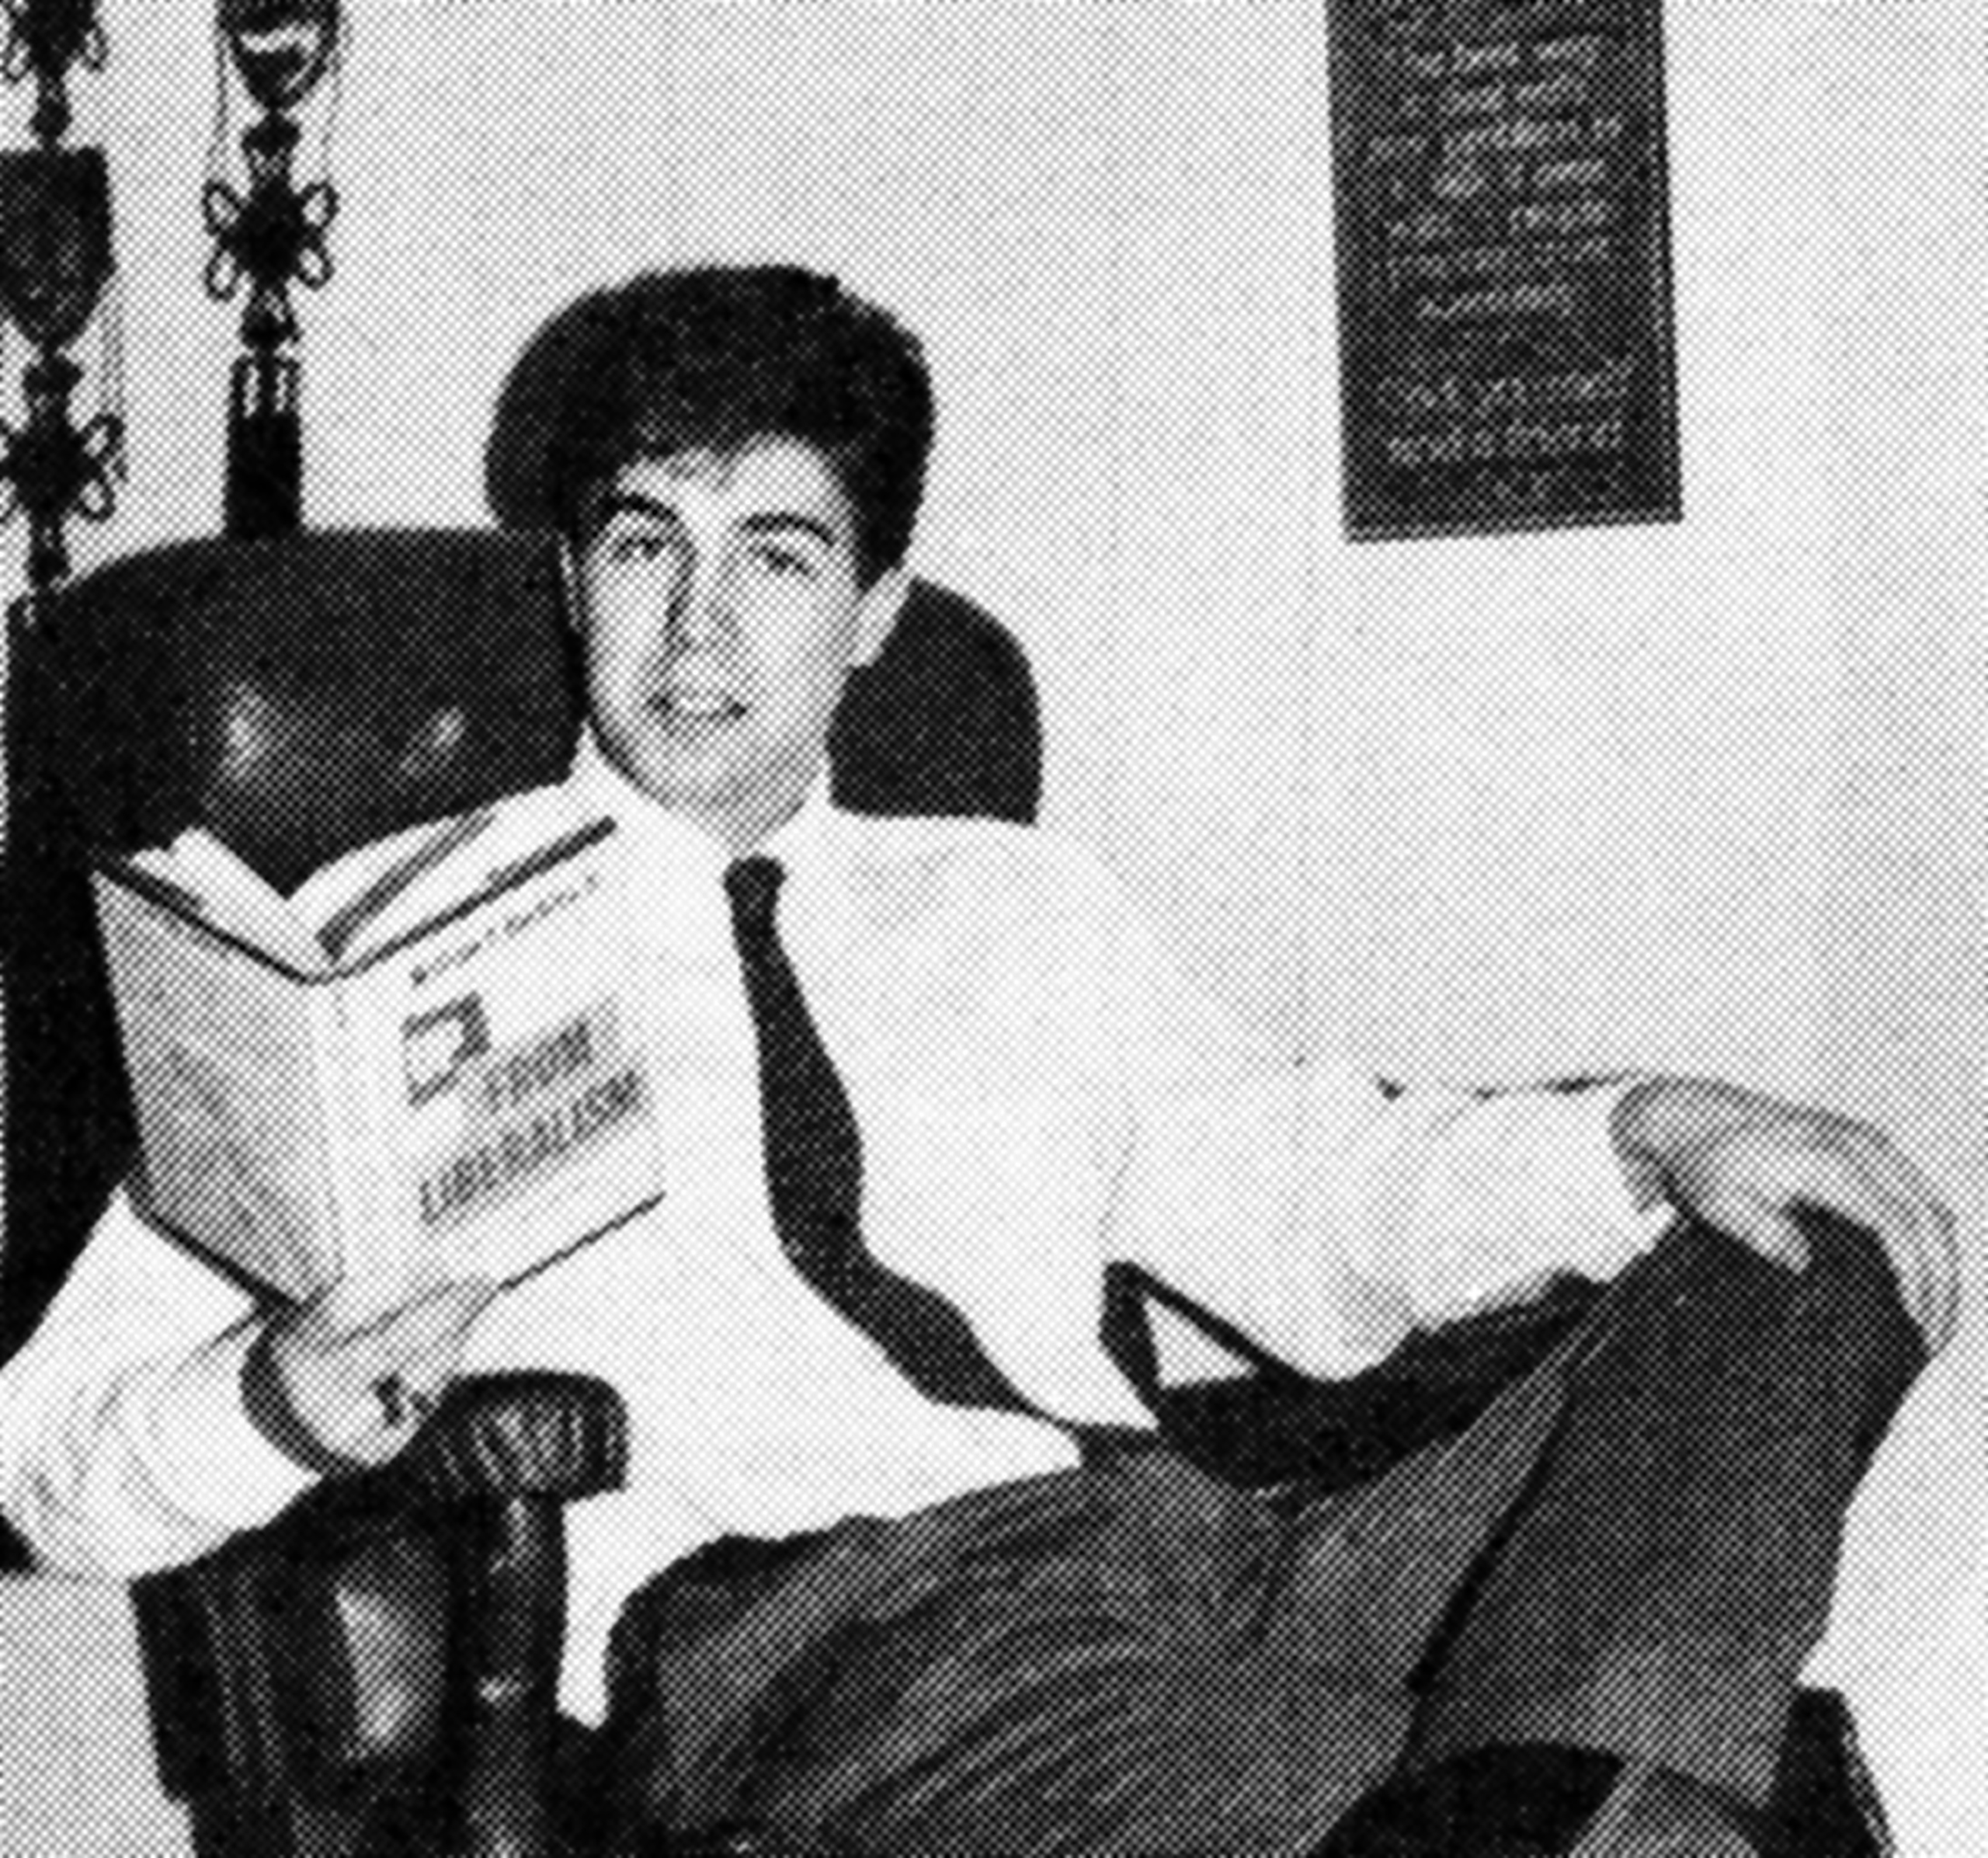 Gorsuch, with Up From Liberalism book by William F. Buckley, Senior Yearbook 1985, Georgetown Preparatory School, Rockville, Md.